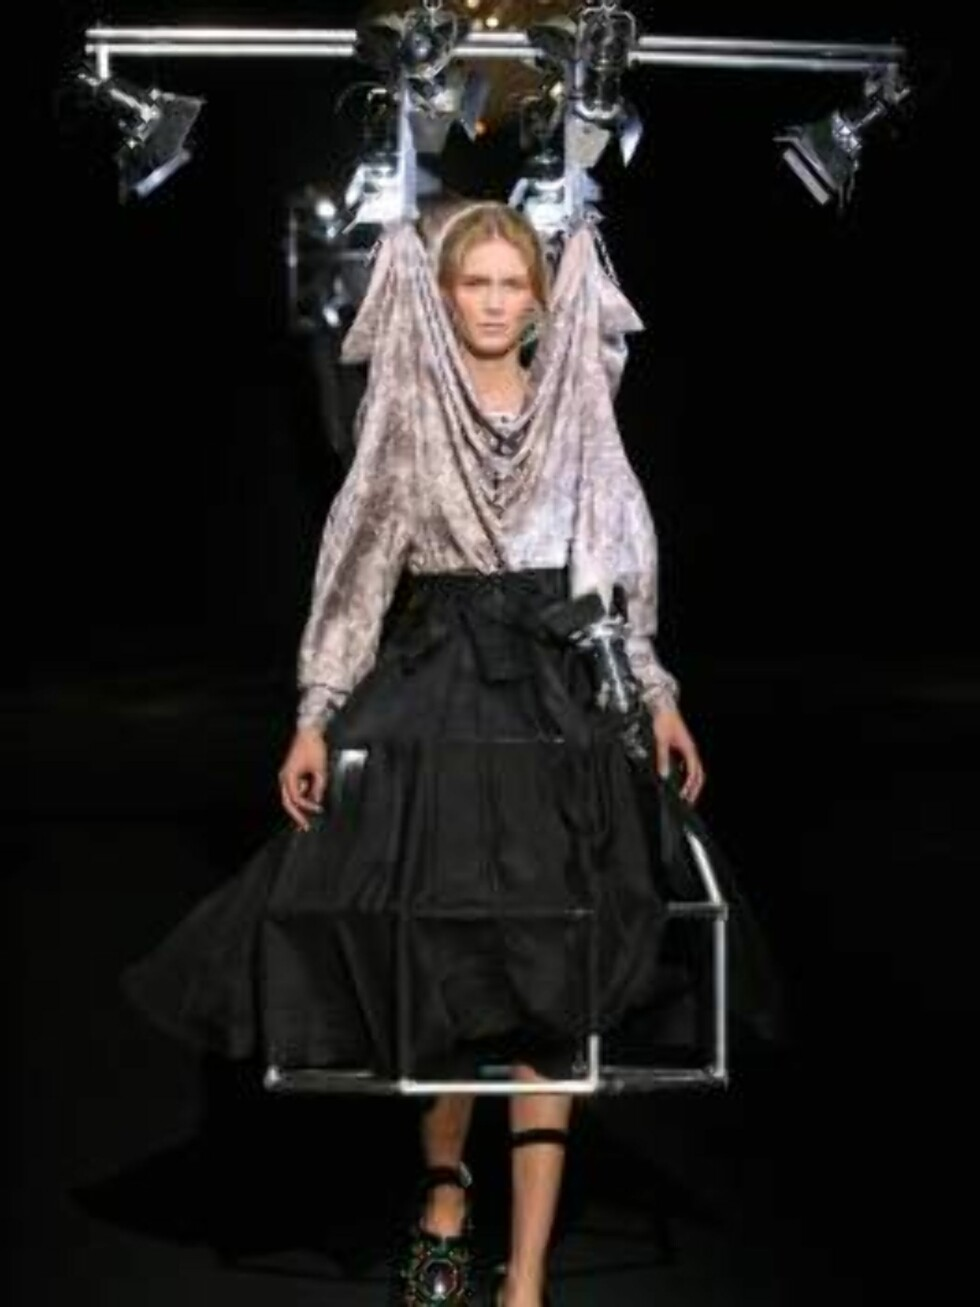 A model displays an outfit designed by Dutch stylists Viktor & Rolf for their Fall-Winter 2007-2008 Ready-to-Wear collection presentation at the Carreau du Temple, in Paris, France, on February 26, 2007  Photo by Guignebourg-Nebinger-Taamallah/ABACAPRESS  Foto: Stella Pictures